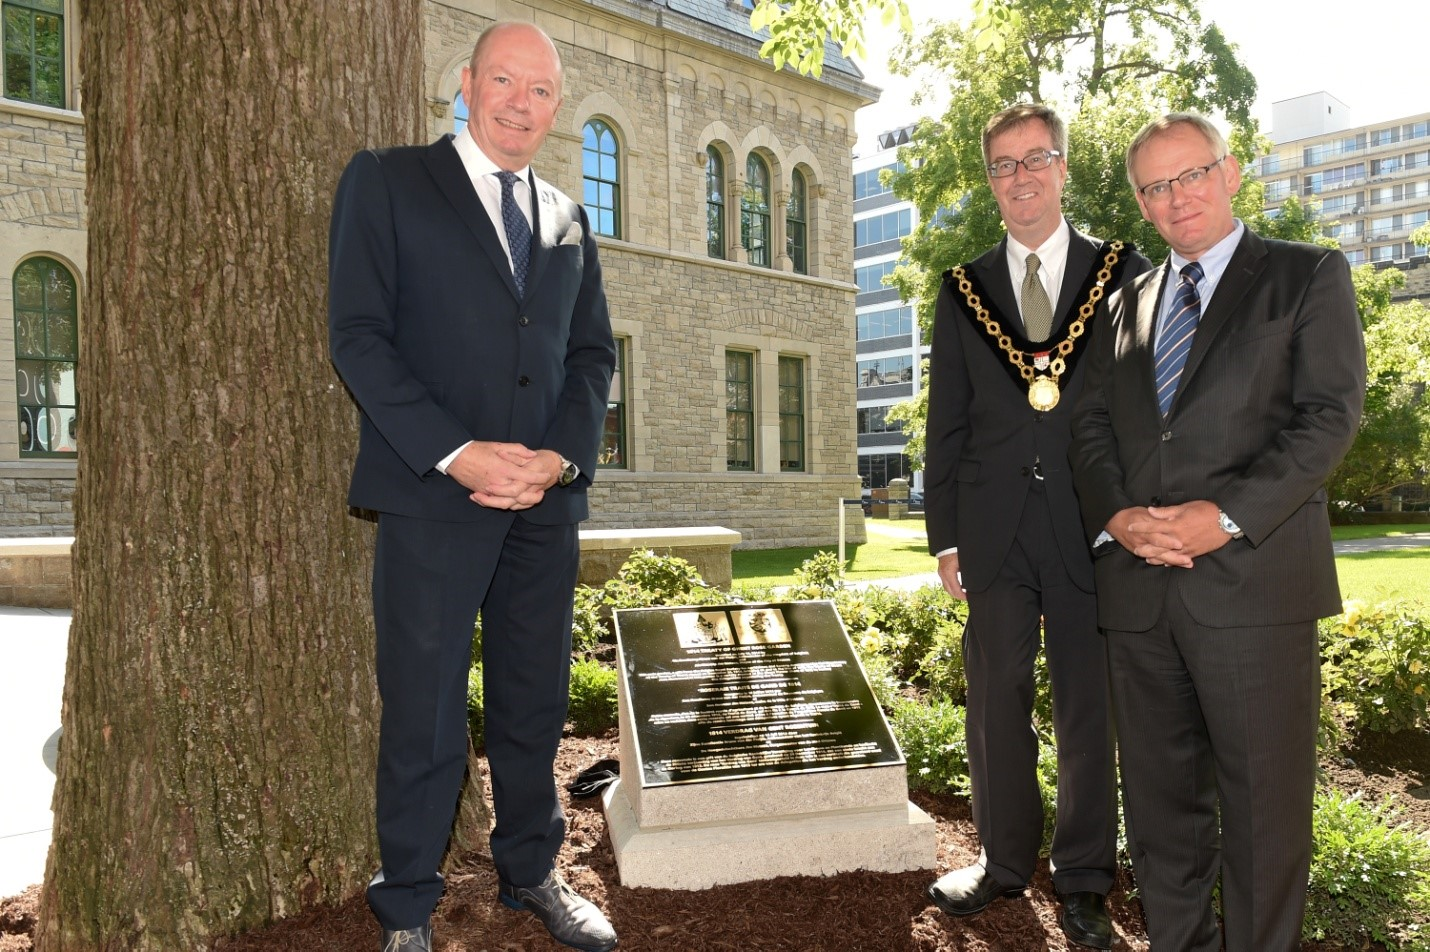 Mayor Jim Watson and Ambassadors standing beside plaque at Dedication Ceremony